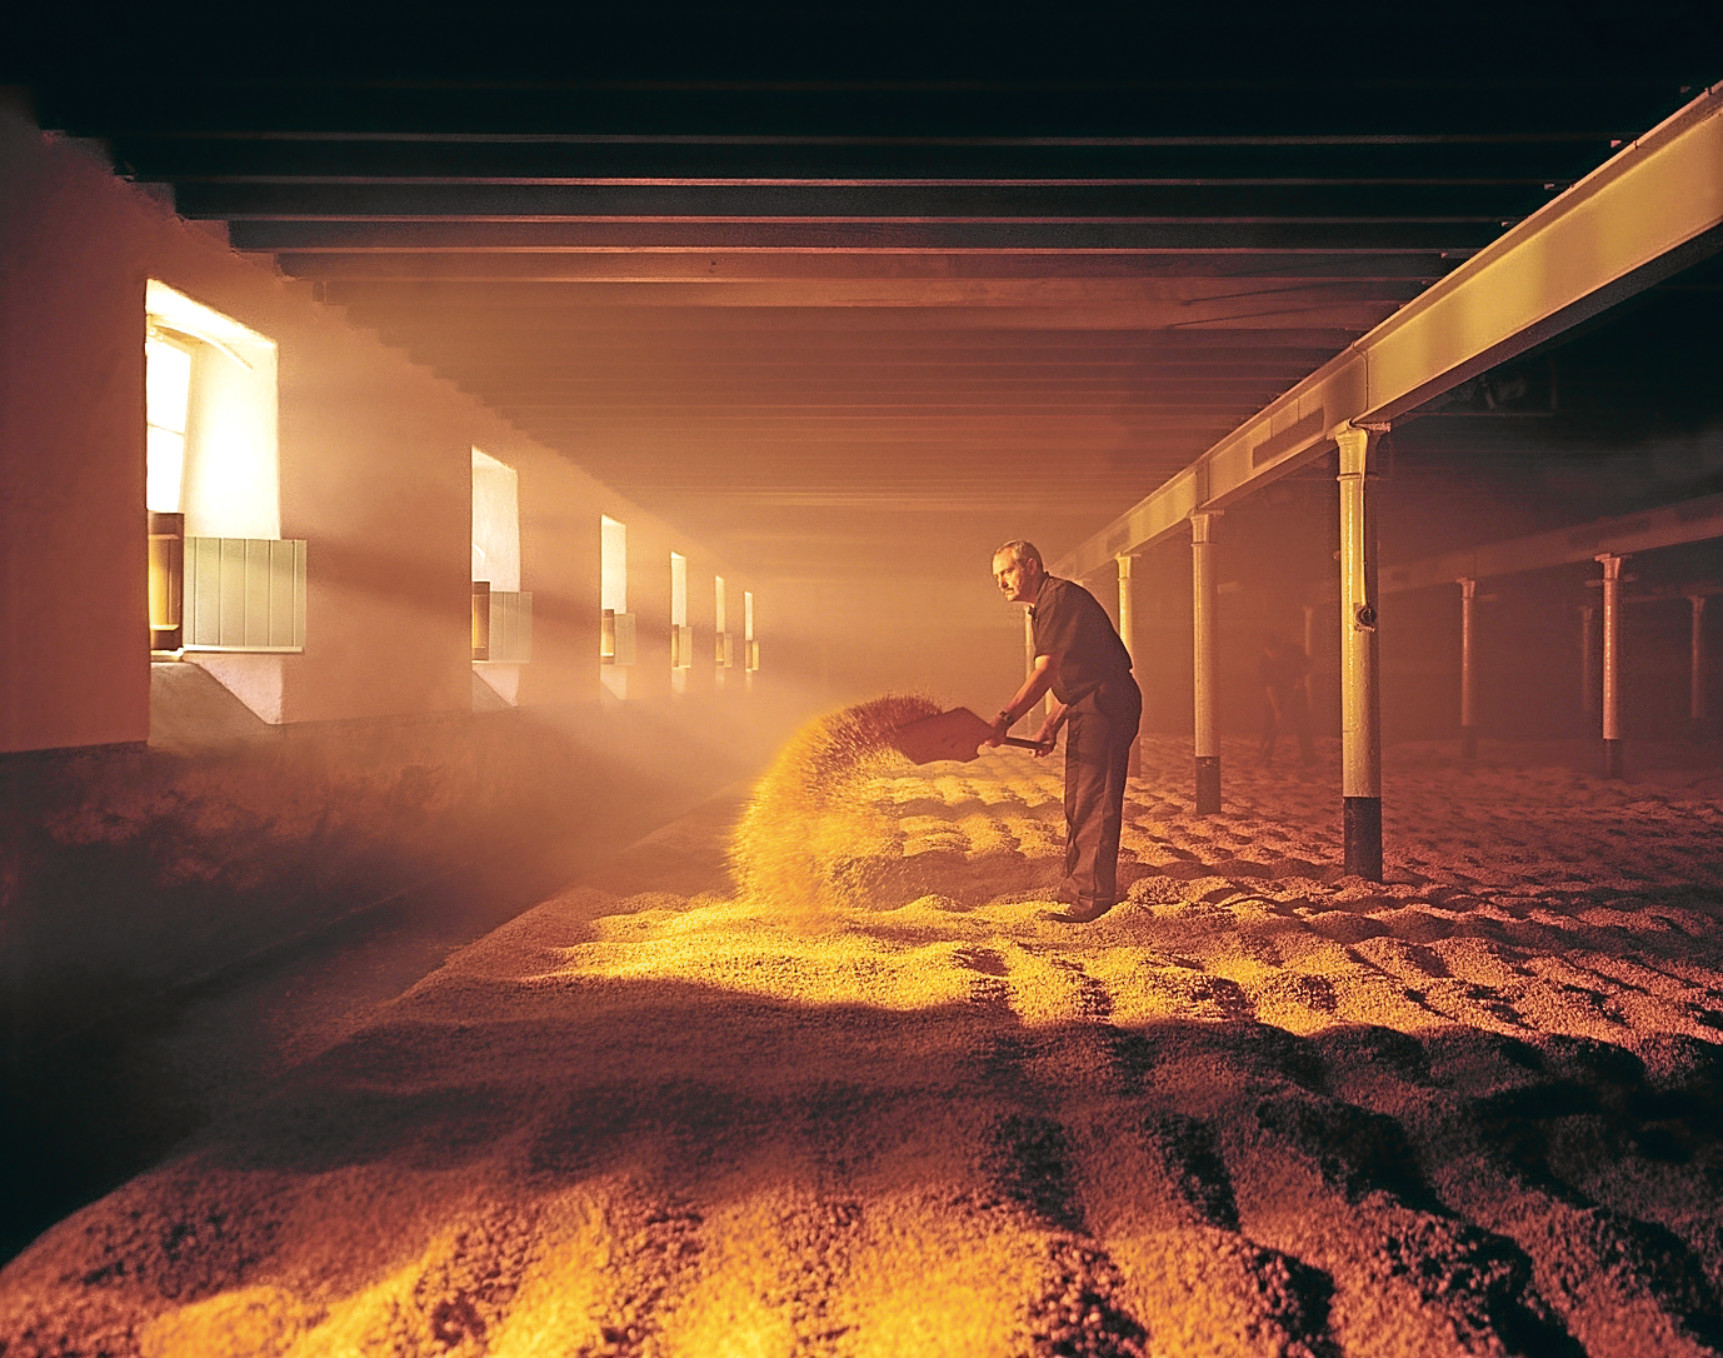 Malting barley is turned at a whisky distillery in the highlands.